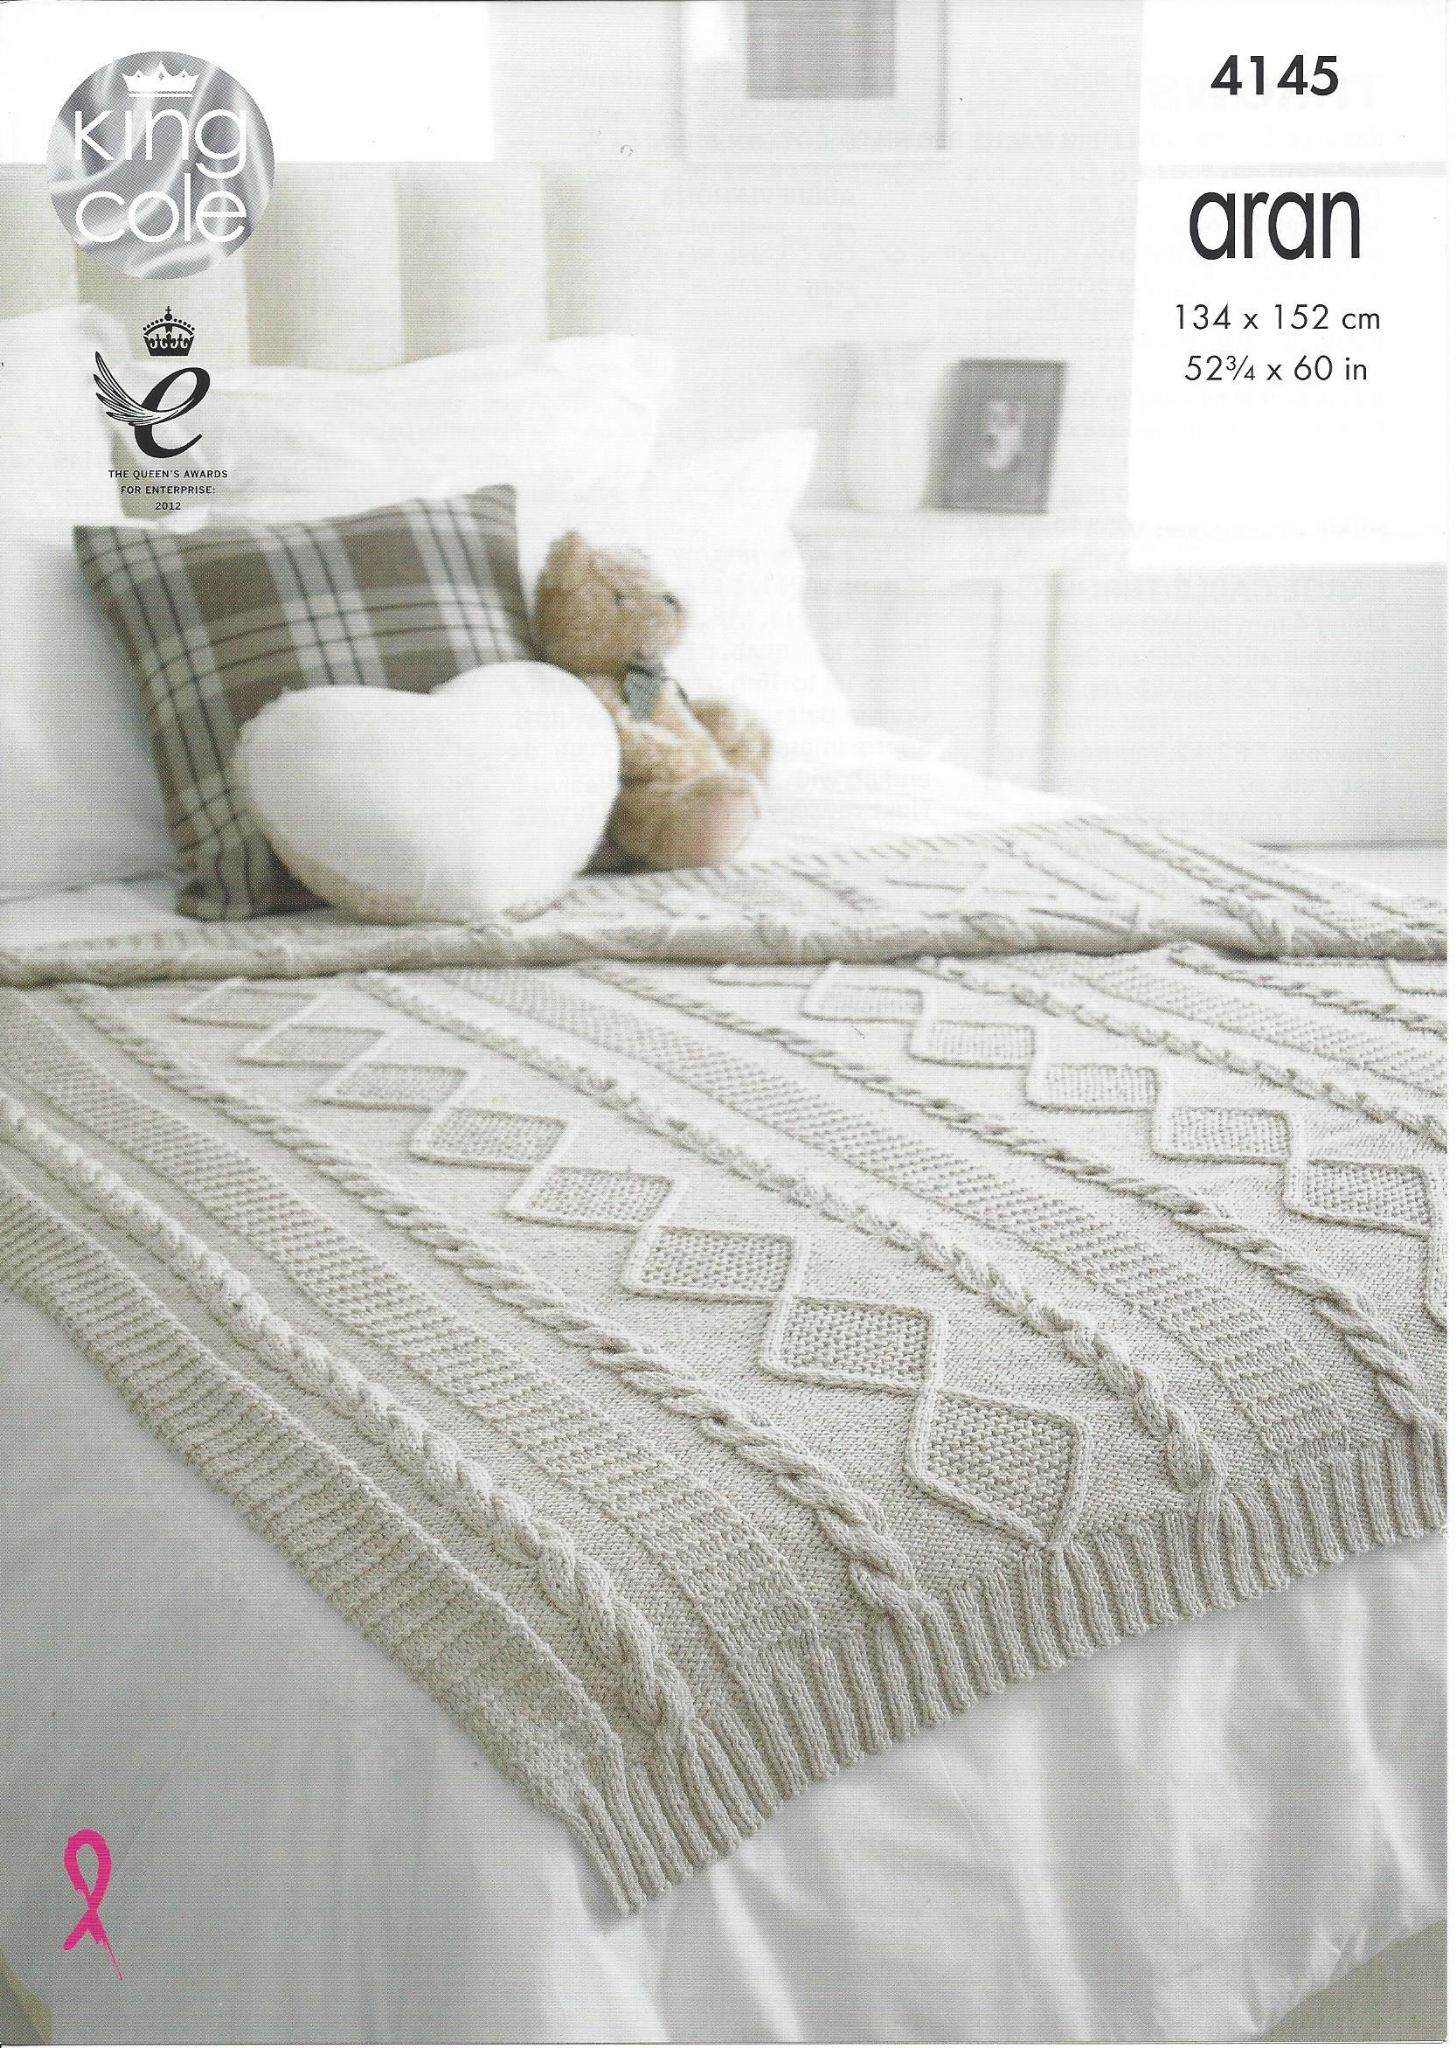 King Cole - 4145 Throws Knitting Pattern